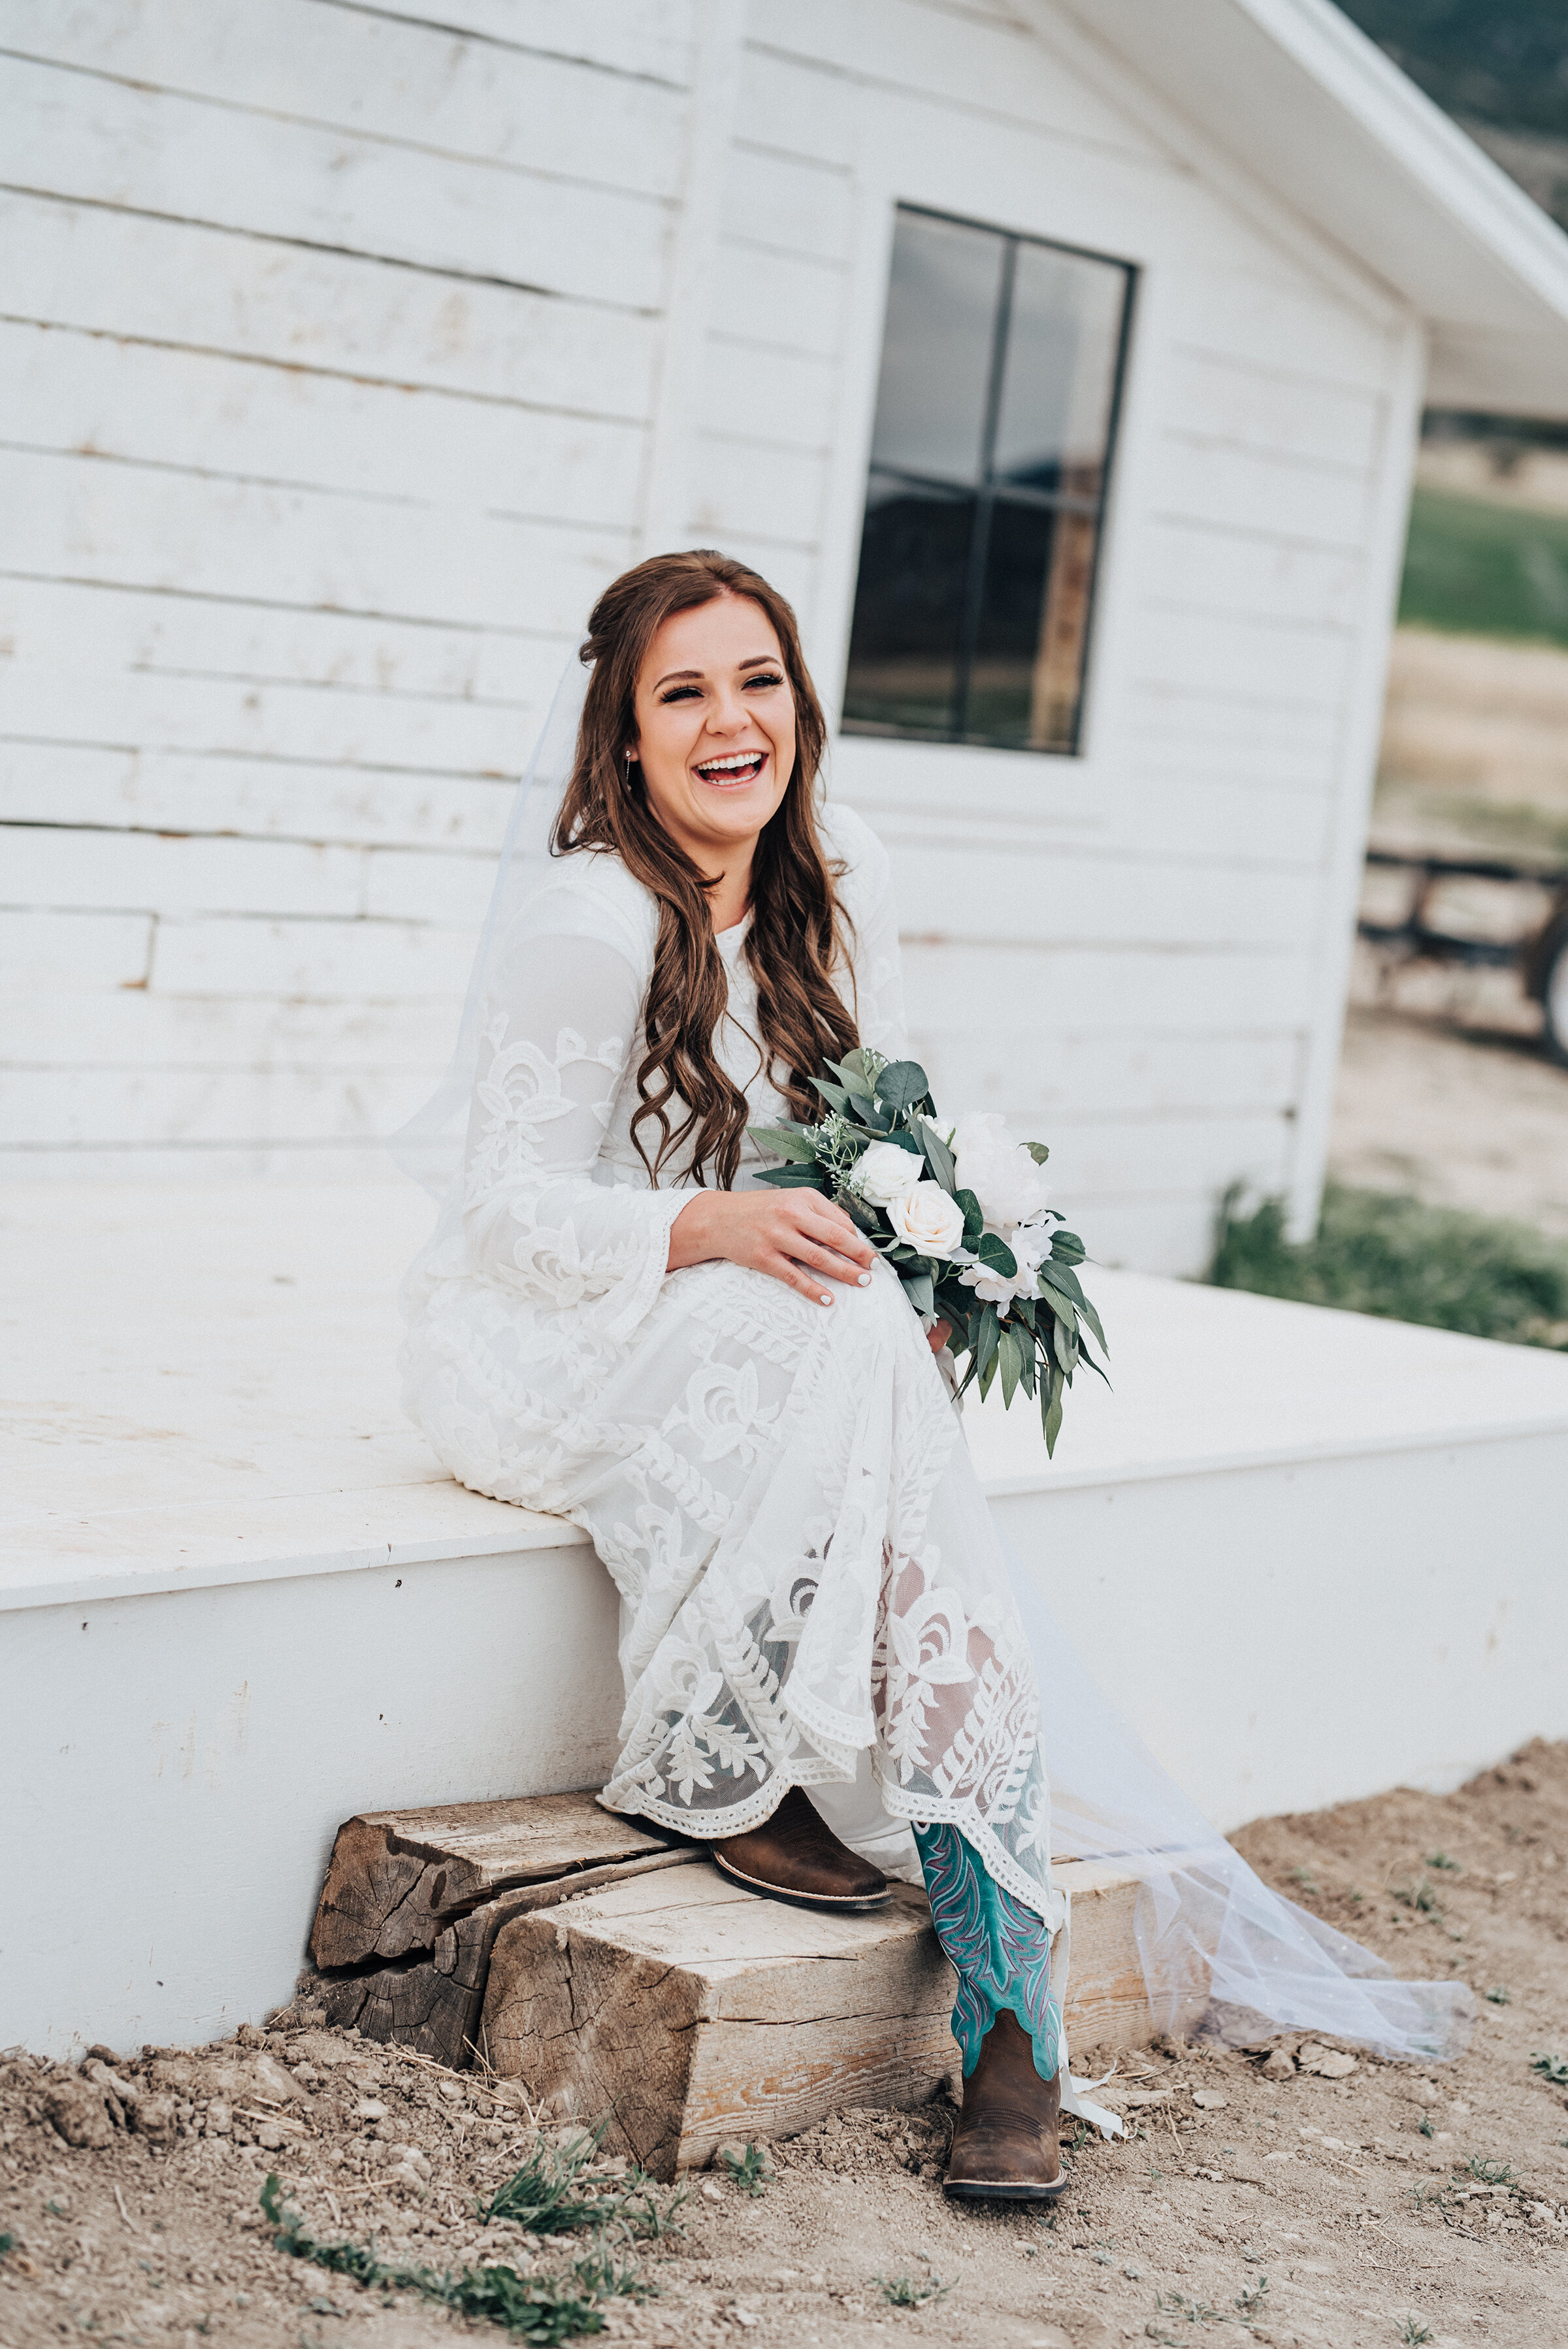 The details in this brides wedding gown all the way down to her festive western cowgirl boots were special and unique for this bride. Wedding day photoshoot in Ephraim Utah photography wedding outdoor location western inspired rustic Airbnb photo aesthetic #ephraimutah #utahphotography #weddingdayphotography #gettingmarried #rusticwedding #utahwedding #westernstyle #weddingphotoshoot